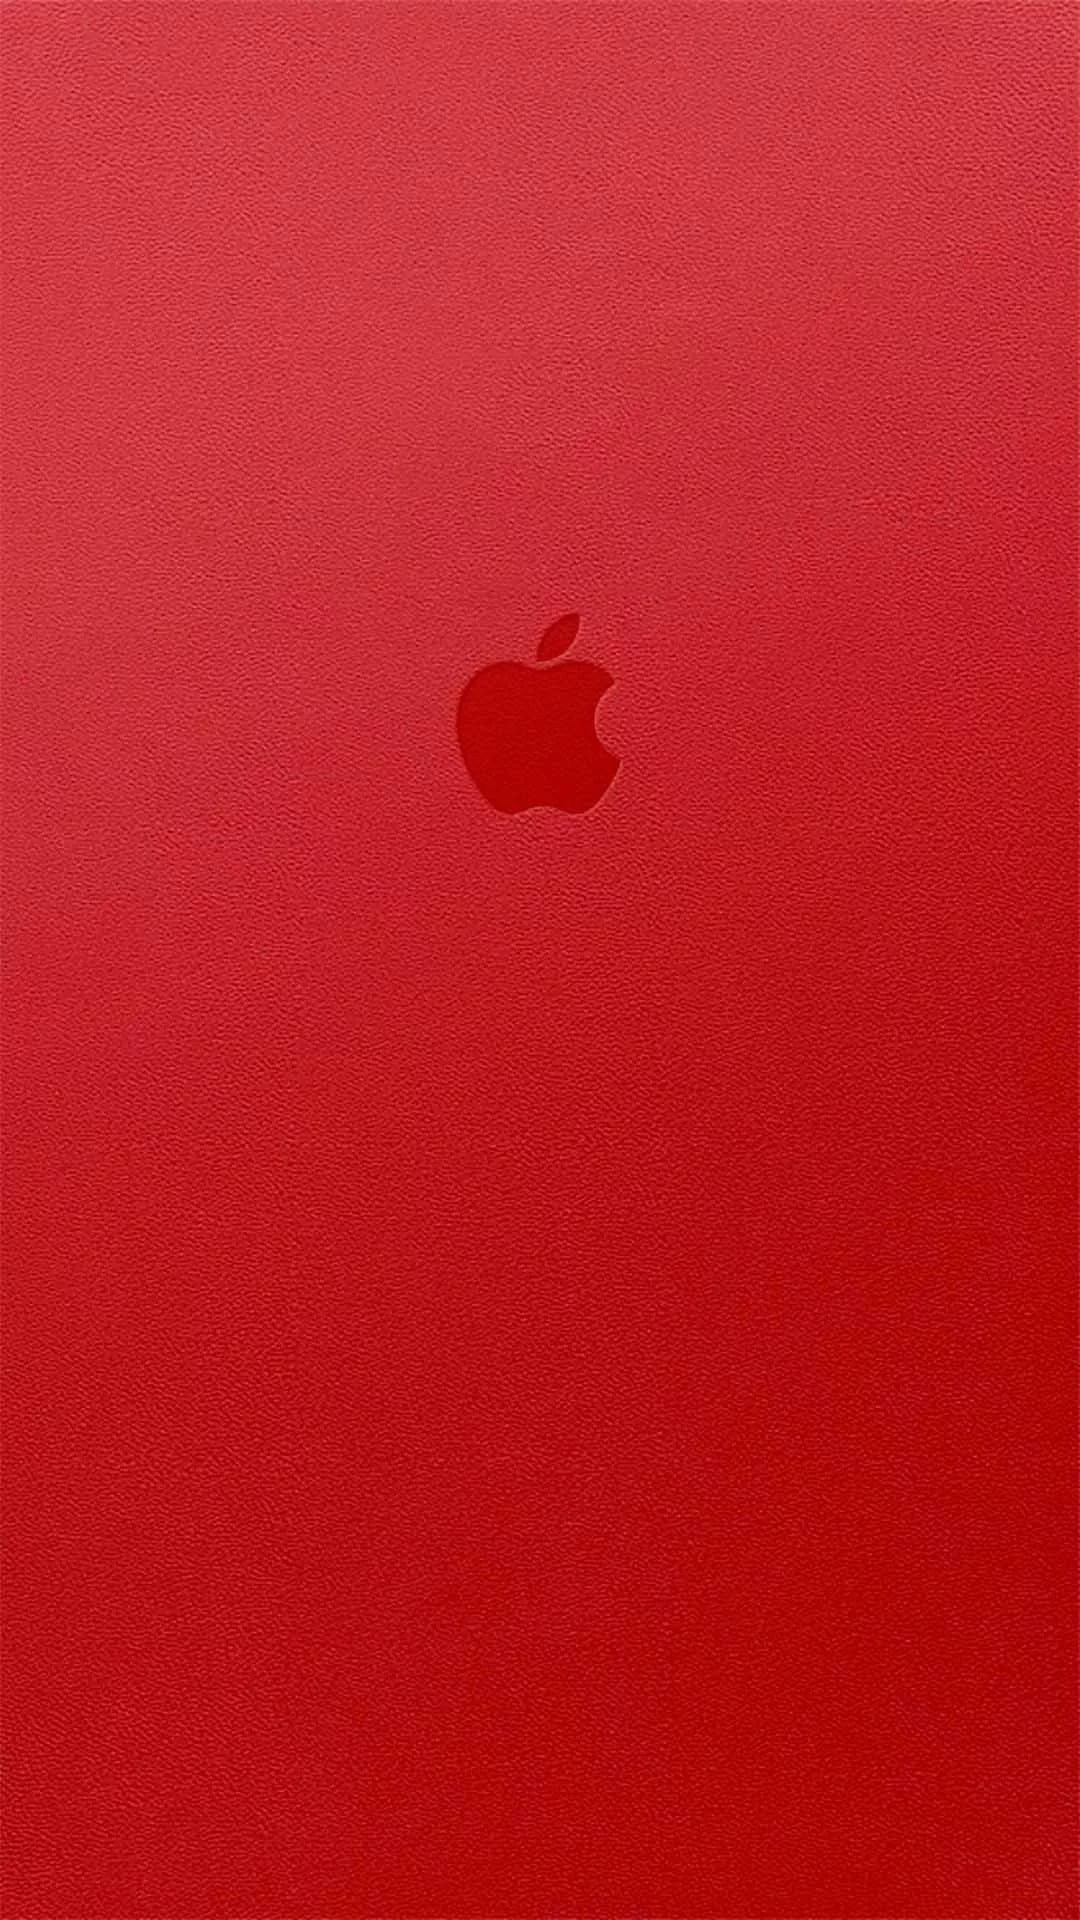 Red Hd wallpaper for iPhone